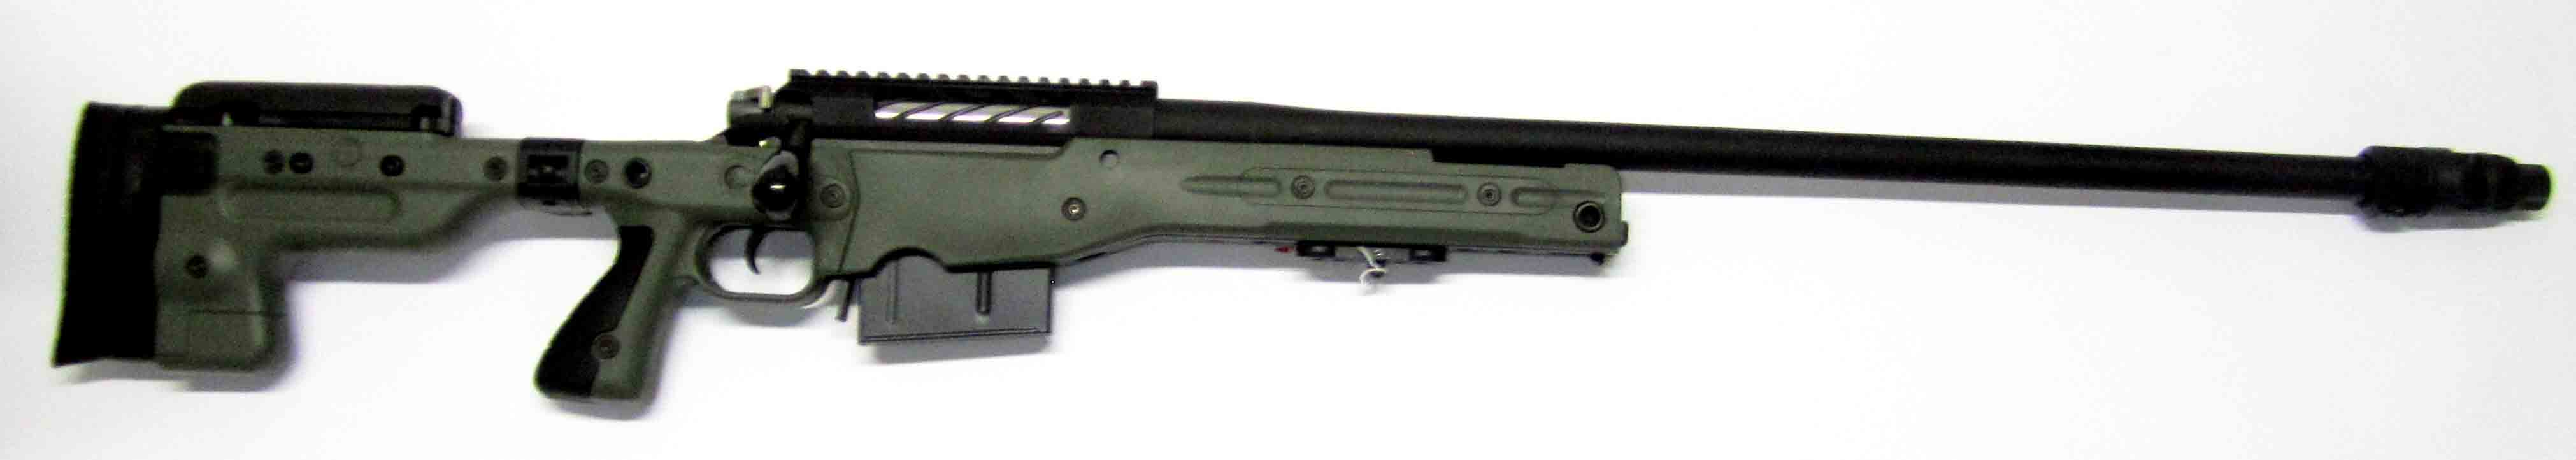 "Nimrod Rifle 27"" AT AICS folding stock . 338 LM . German custom action. Green. Tac Muzzle Brake